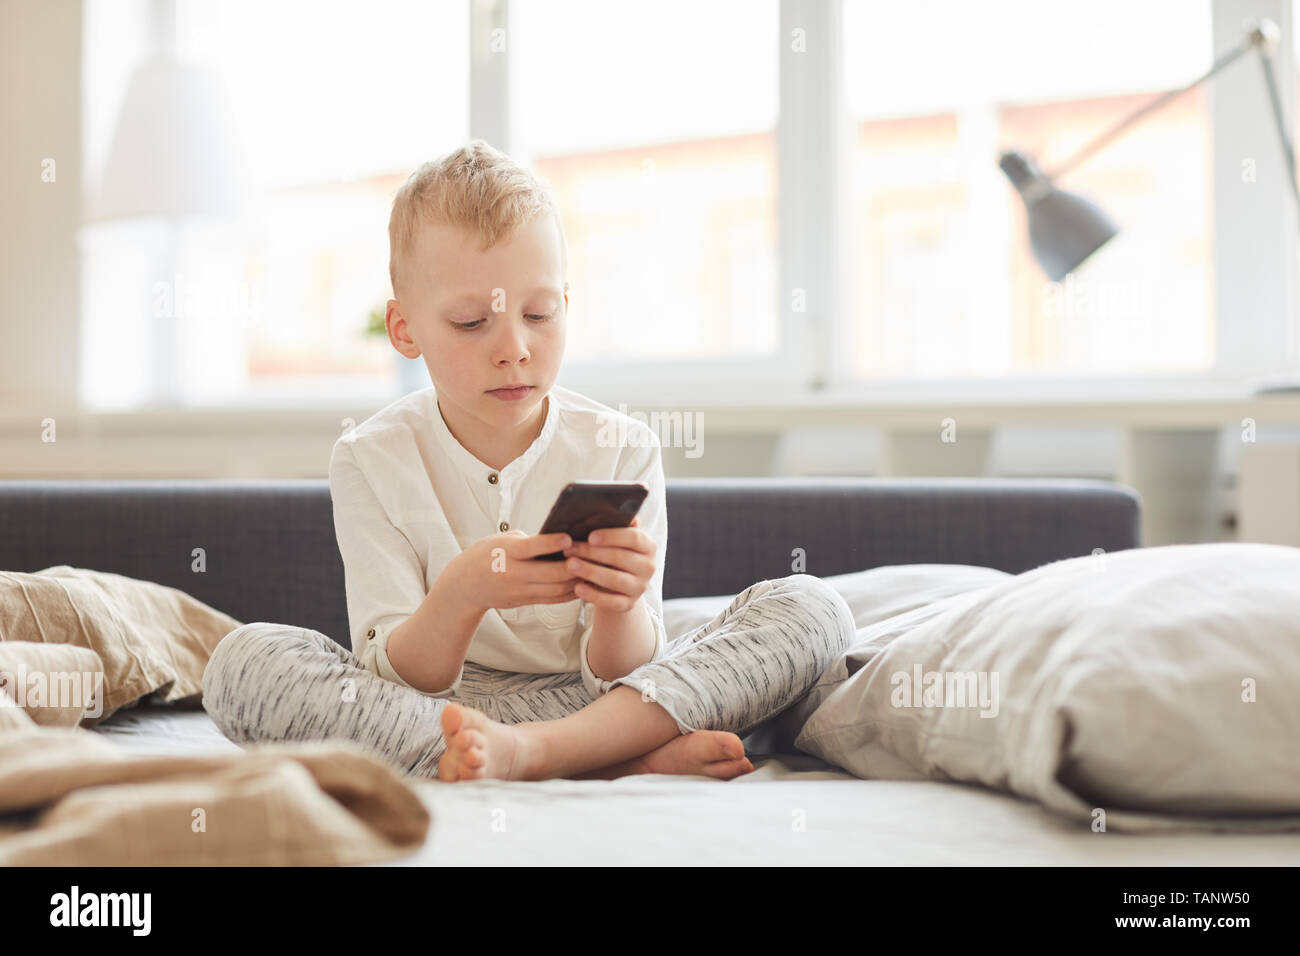 Serious concentrated blond-haired boy in homewear sitting with crossed legs on bed and using smartphone in morning - Stock Image